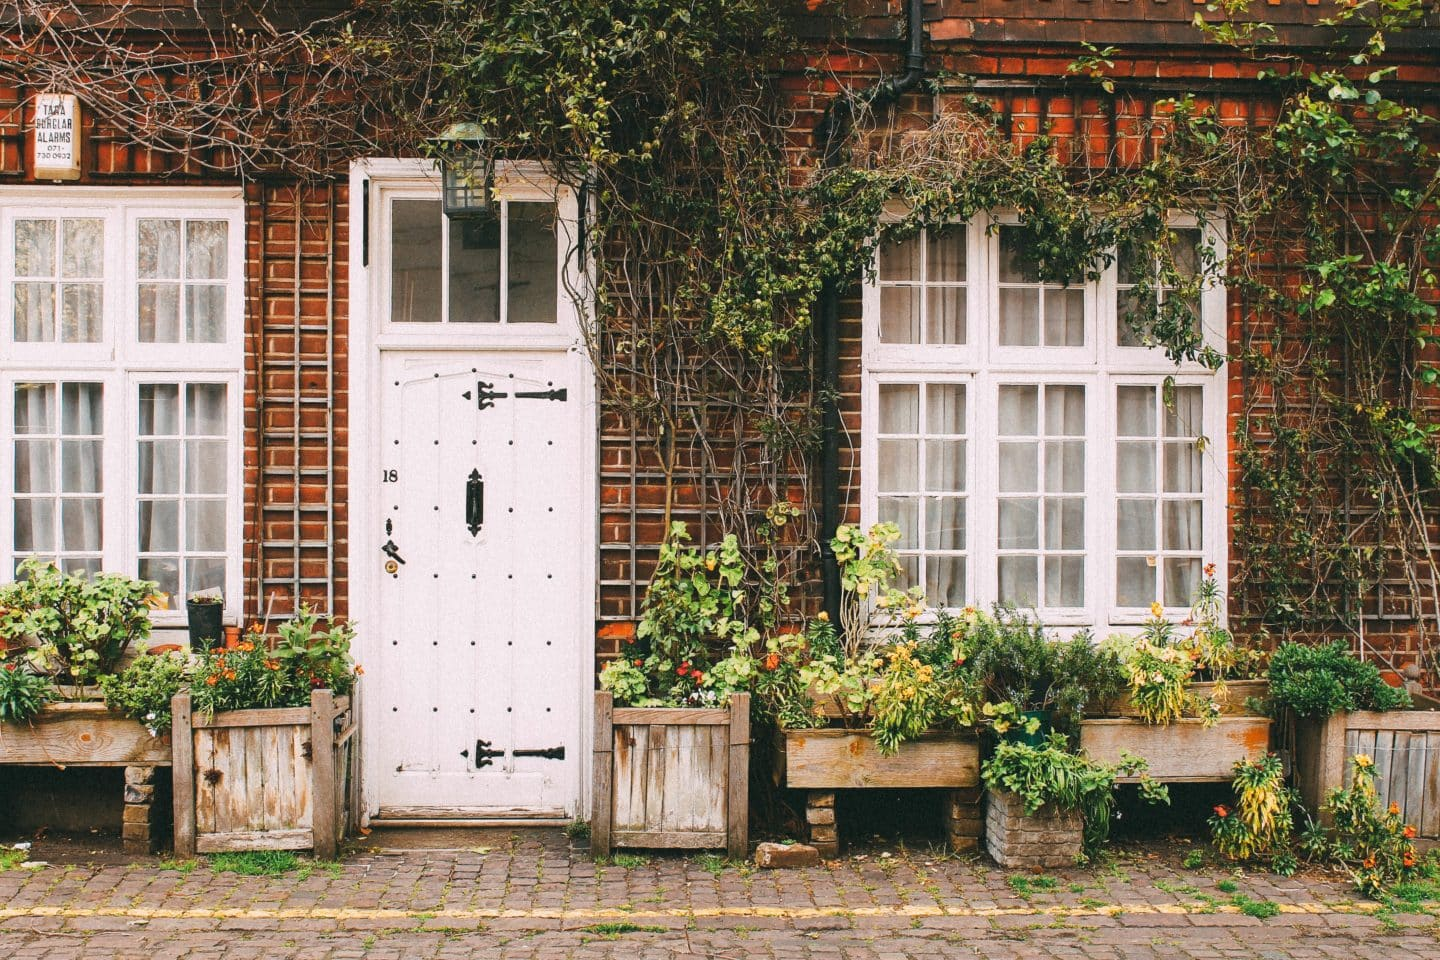 Finding Grace After Moving: How to Transition Well to a New City